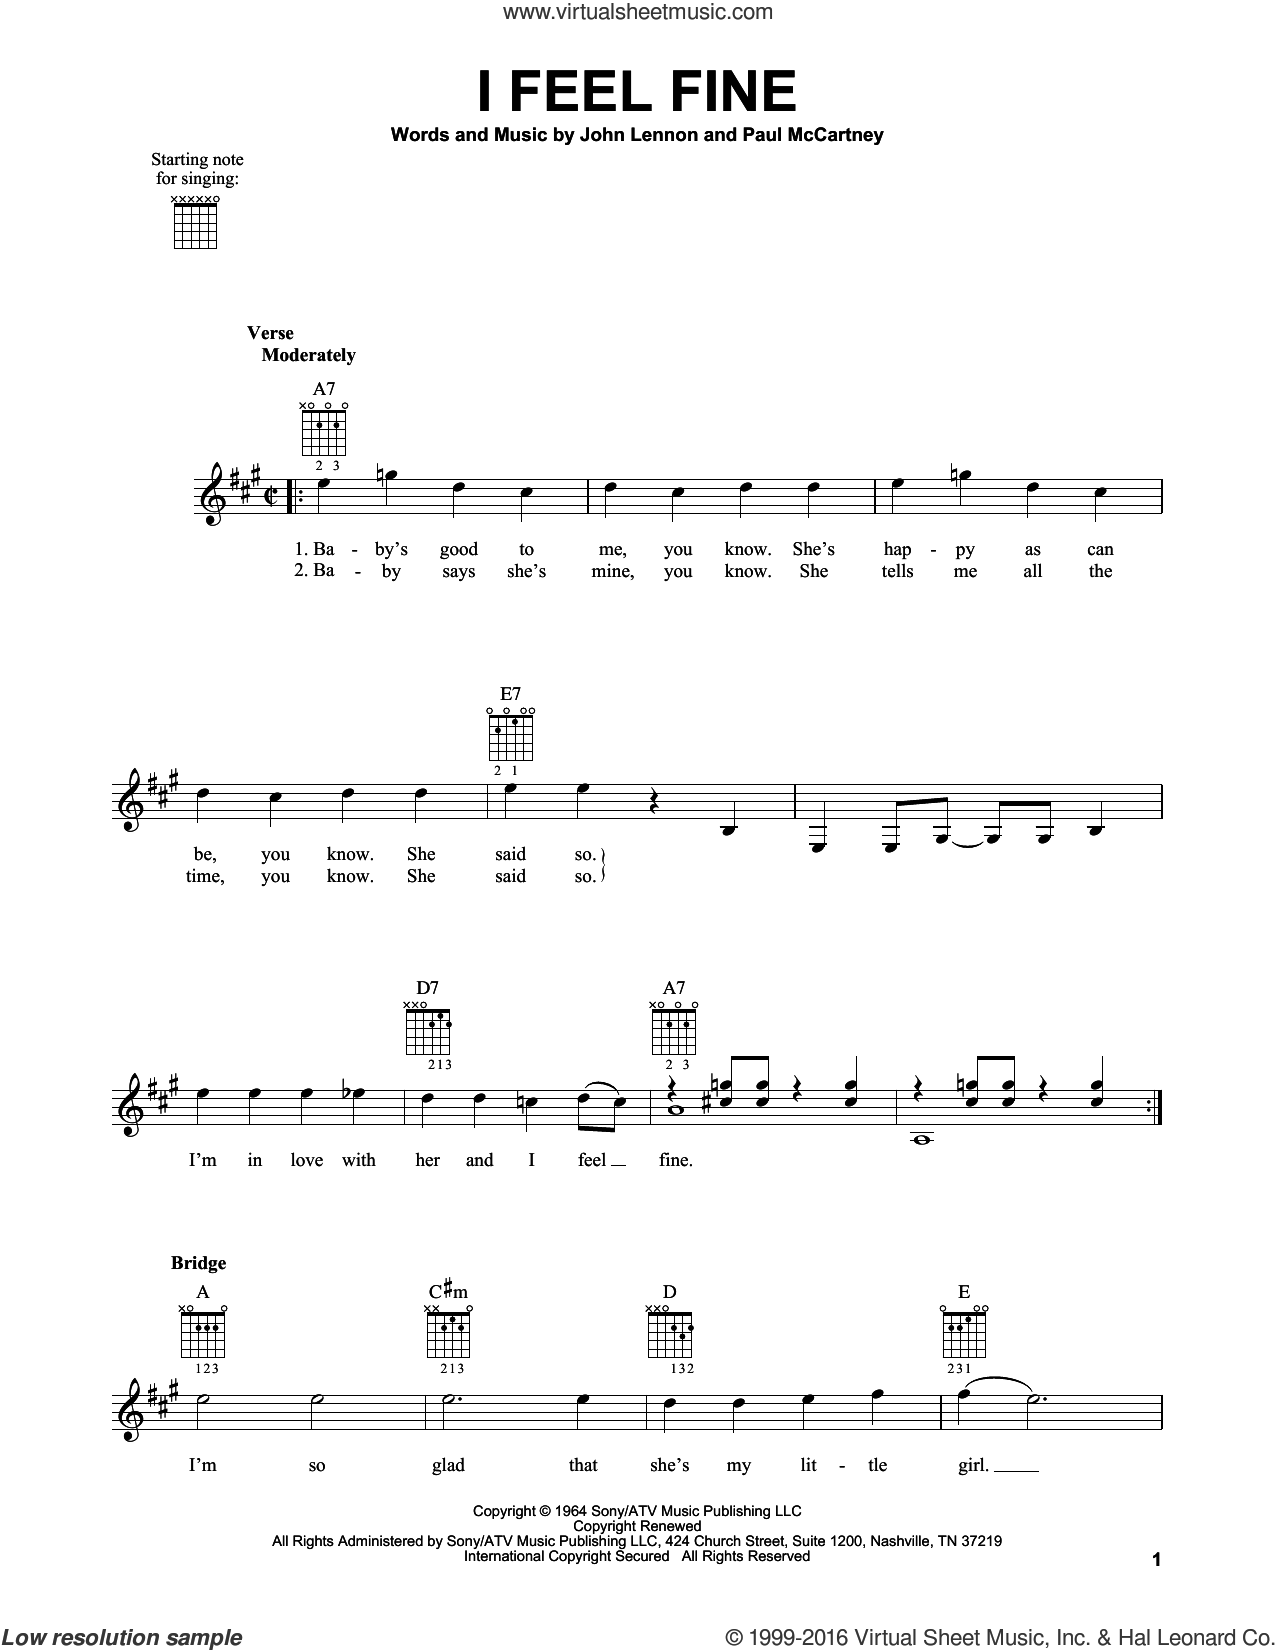 I Feel Fine sheet music for guitar solo (chords) by The Beatles, John Lennon and Paul McCartney, easy guitar (chords). Score Image Preview.